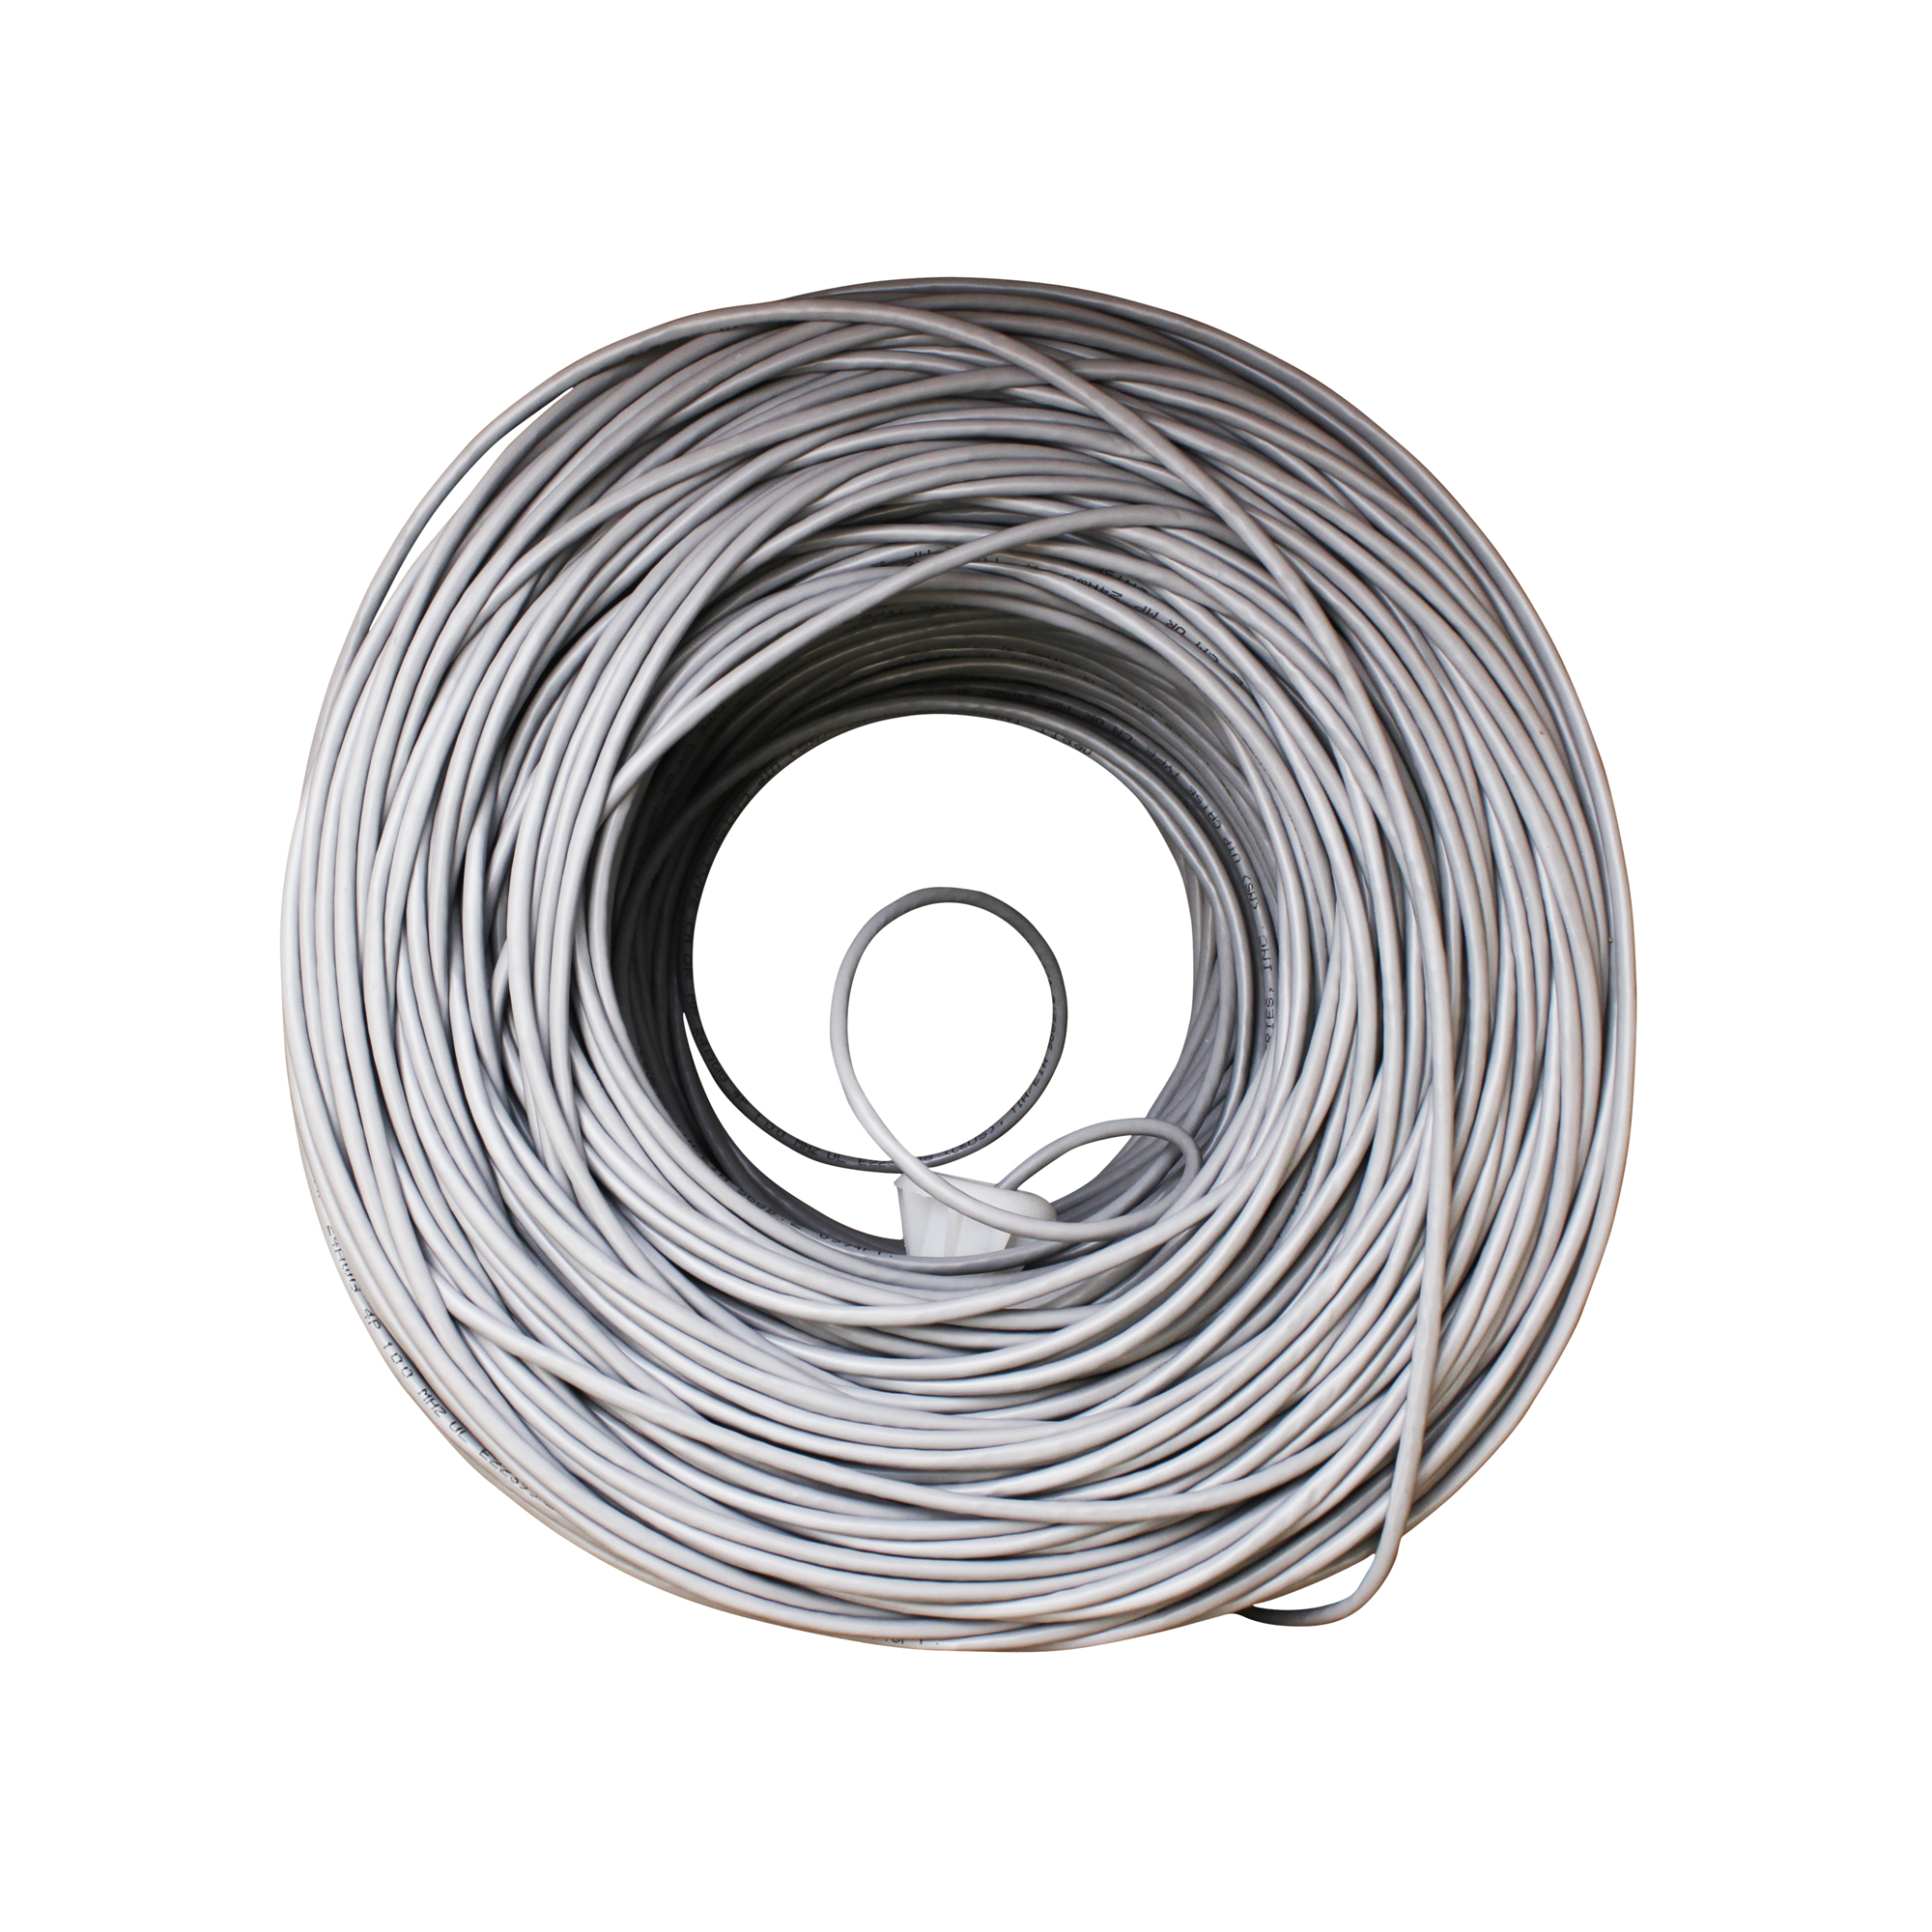 hight resolution of details about orbit cat5e 4p gy cat5e ethernet cable type cm utp bare copper gray 1000